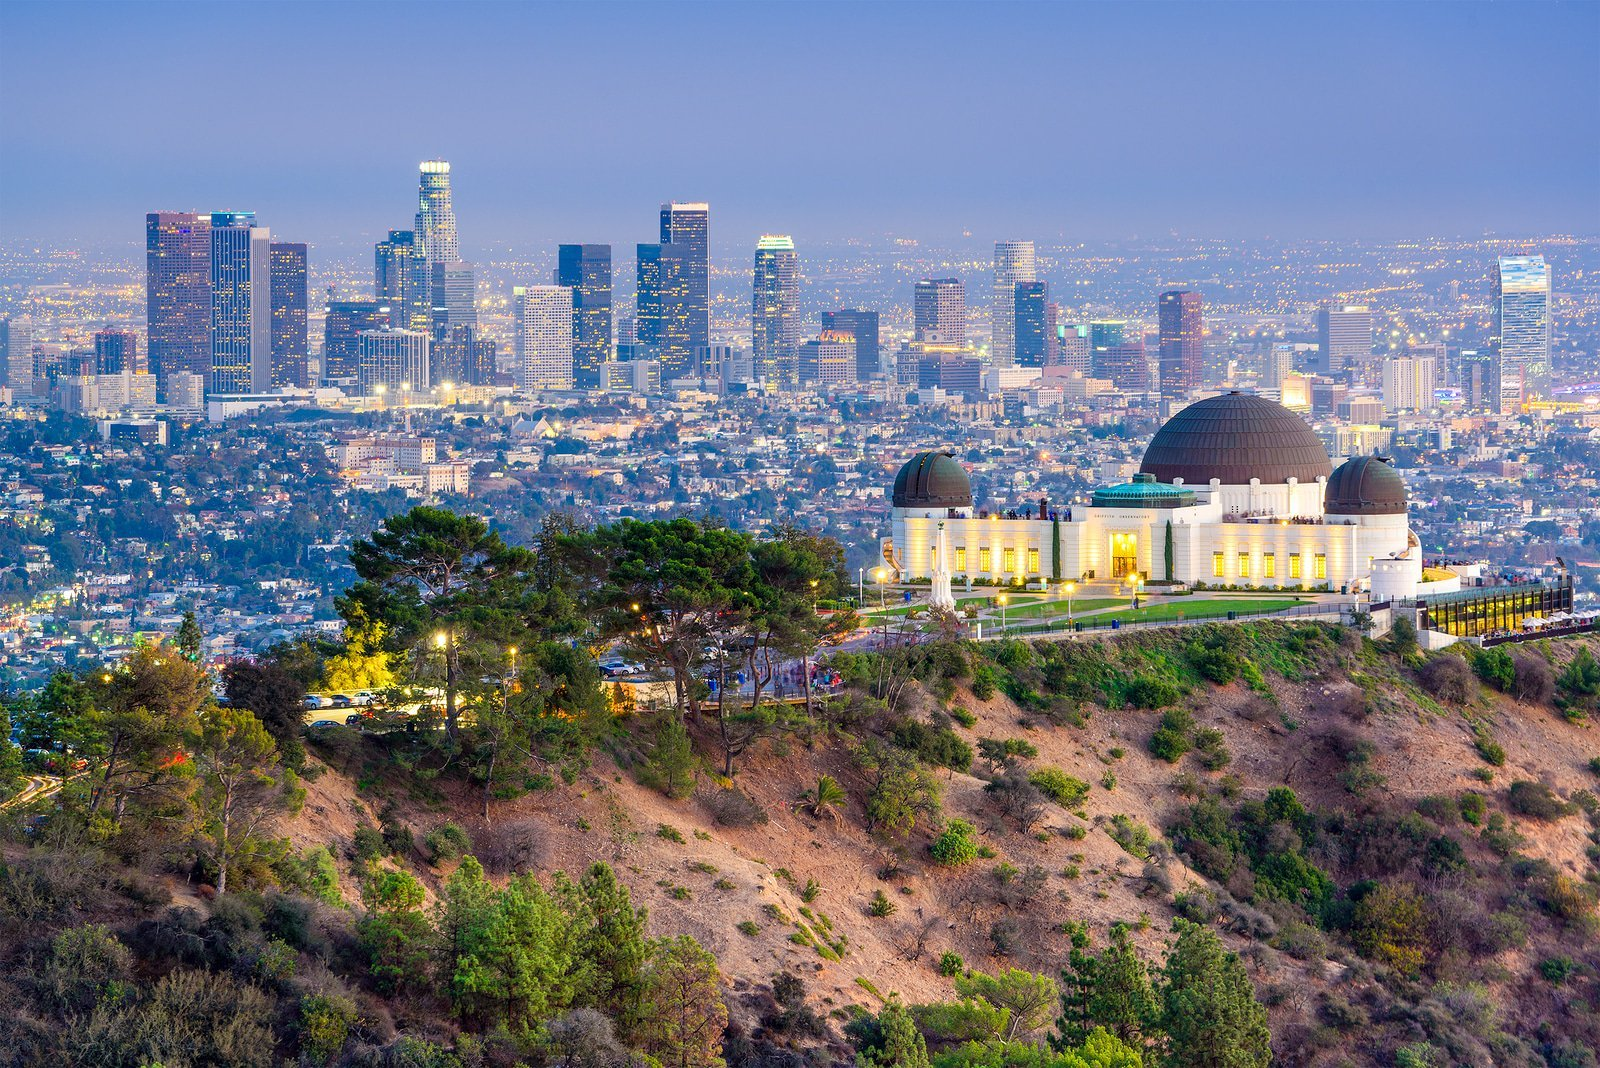 Aerial view of Griffith Park Observatory with city skyline in the background.